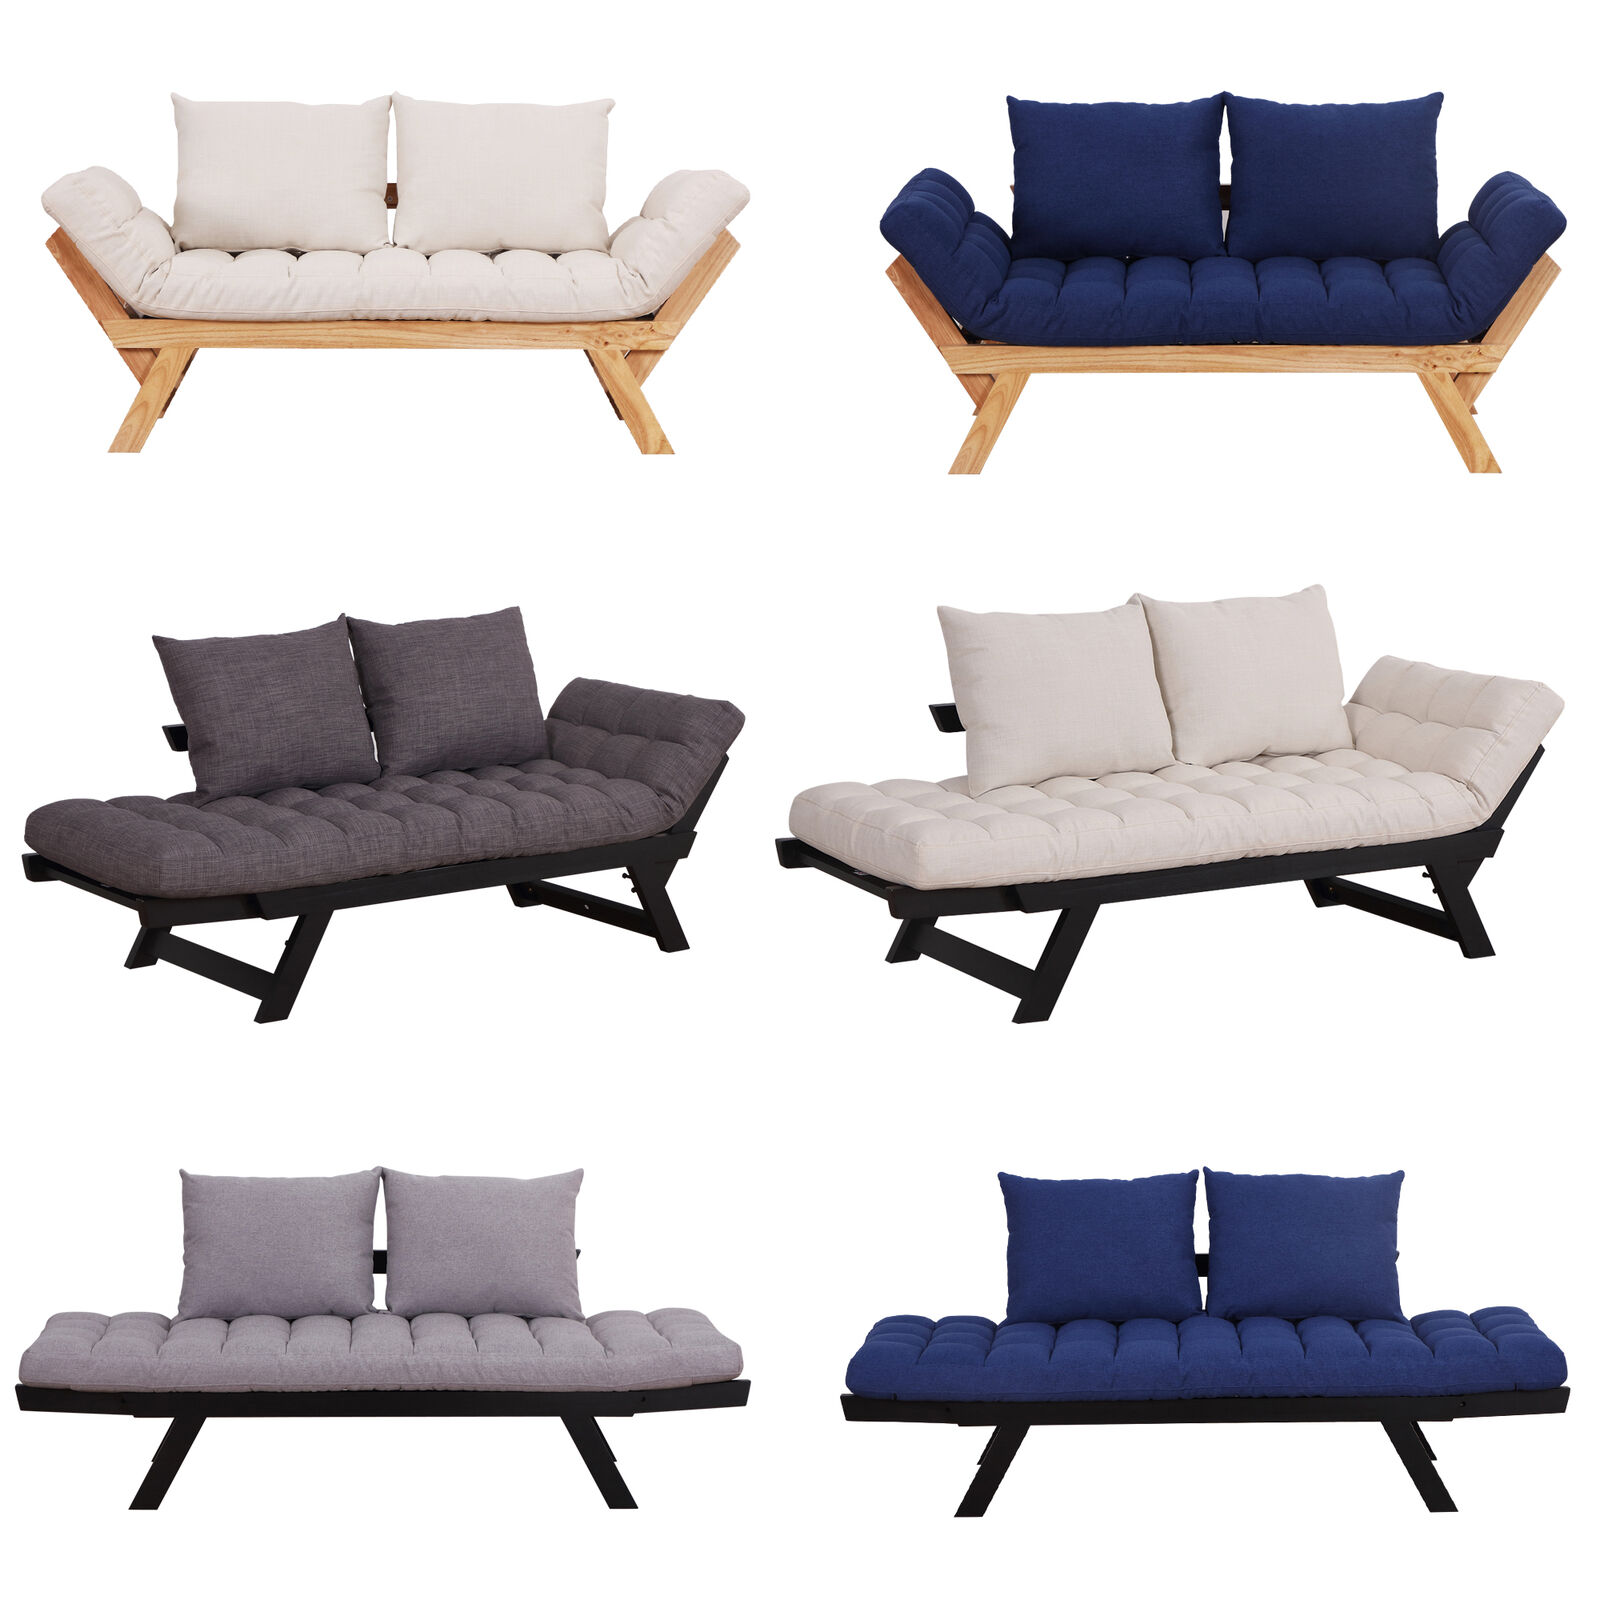 Swell Convertible Sofa Bed Sleeper Couch Chaise Lounge Chair Adjustable Padded Pillow Andrewgaddart Wooden Chair Designs For Living Room Andrewgaddartcom